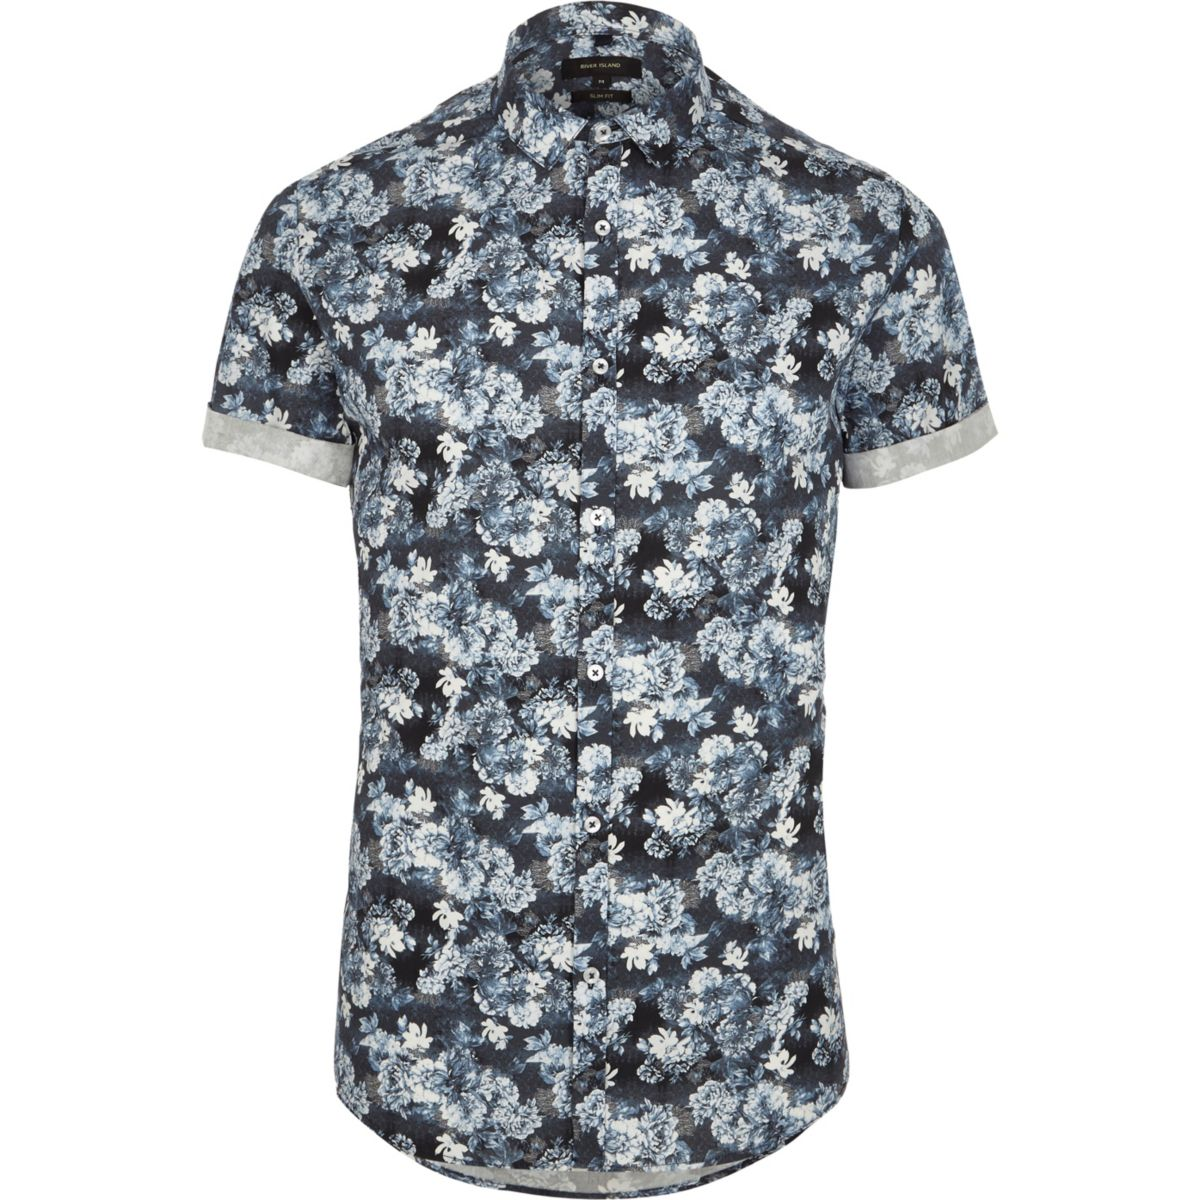 Blue floral print short sleeve slim fit shirt shirts for Printed short sleeve shirts